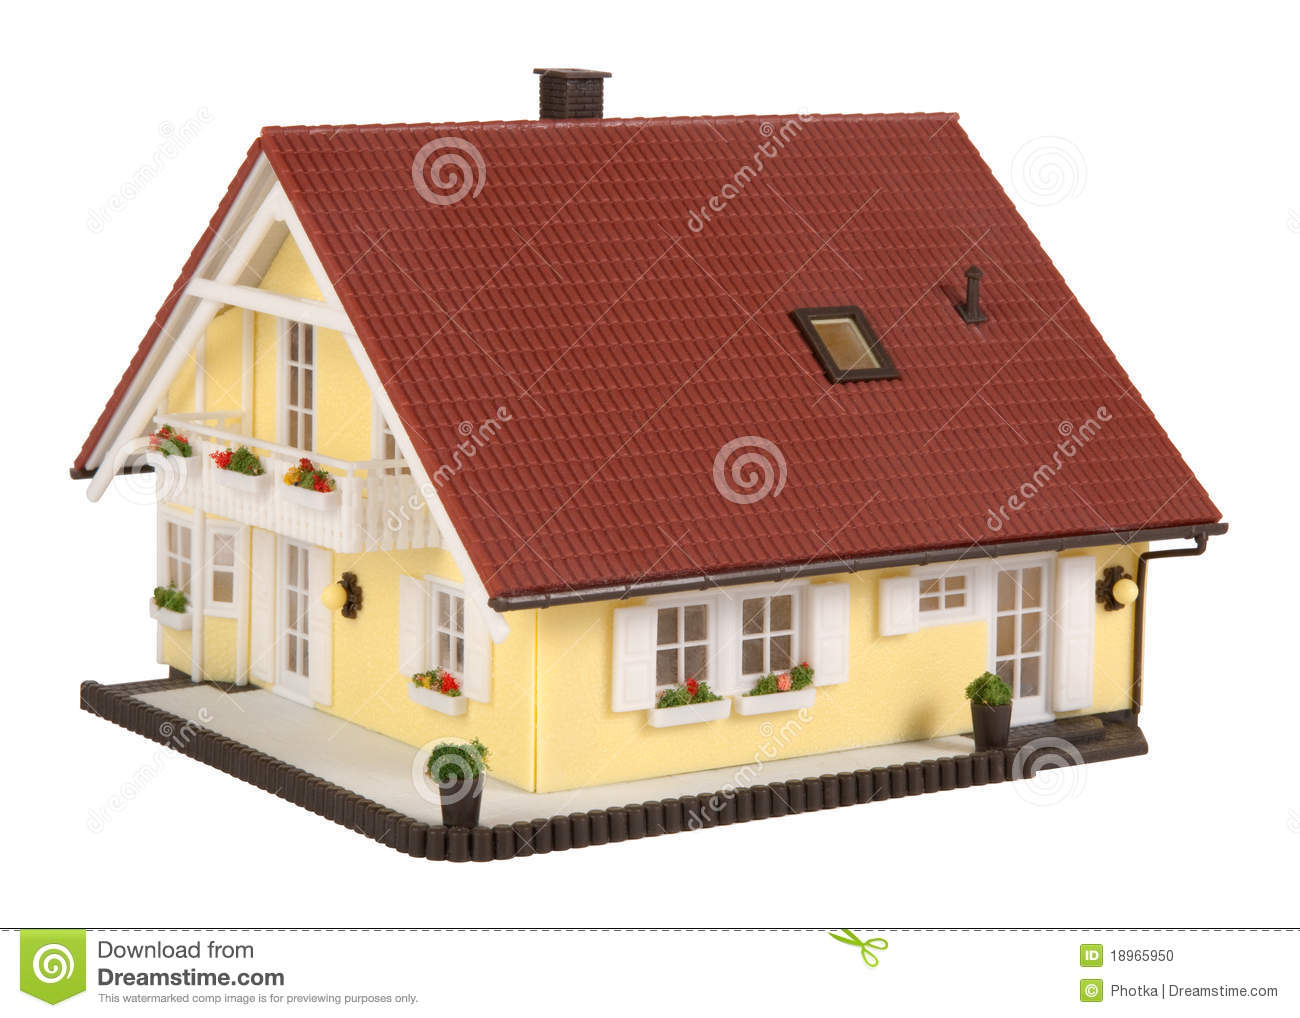 Model house stock photo image 18965950 for Building model houses